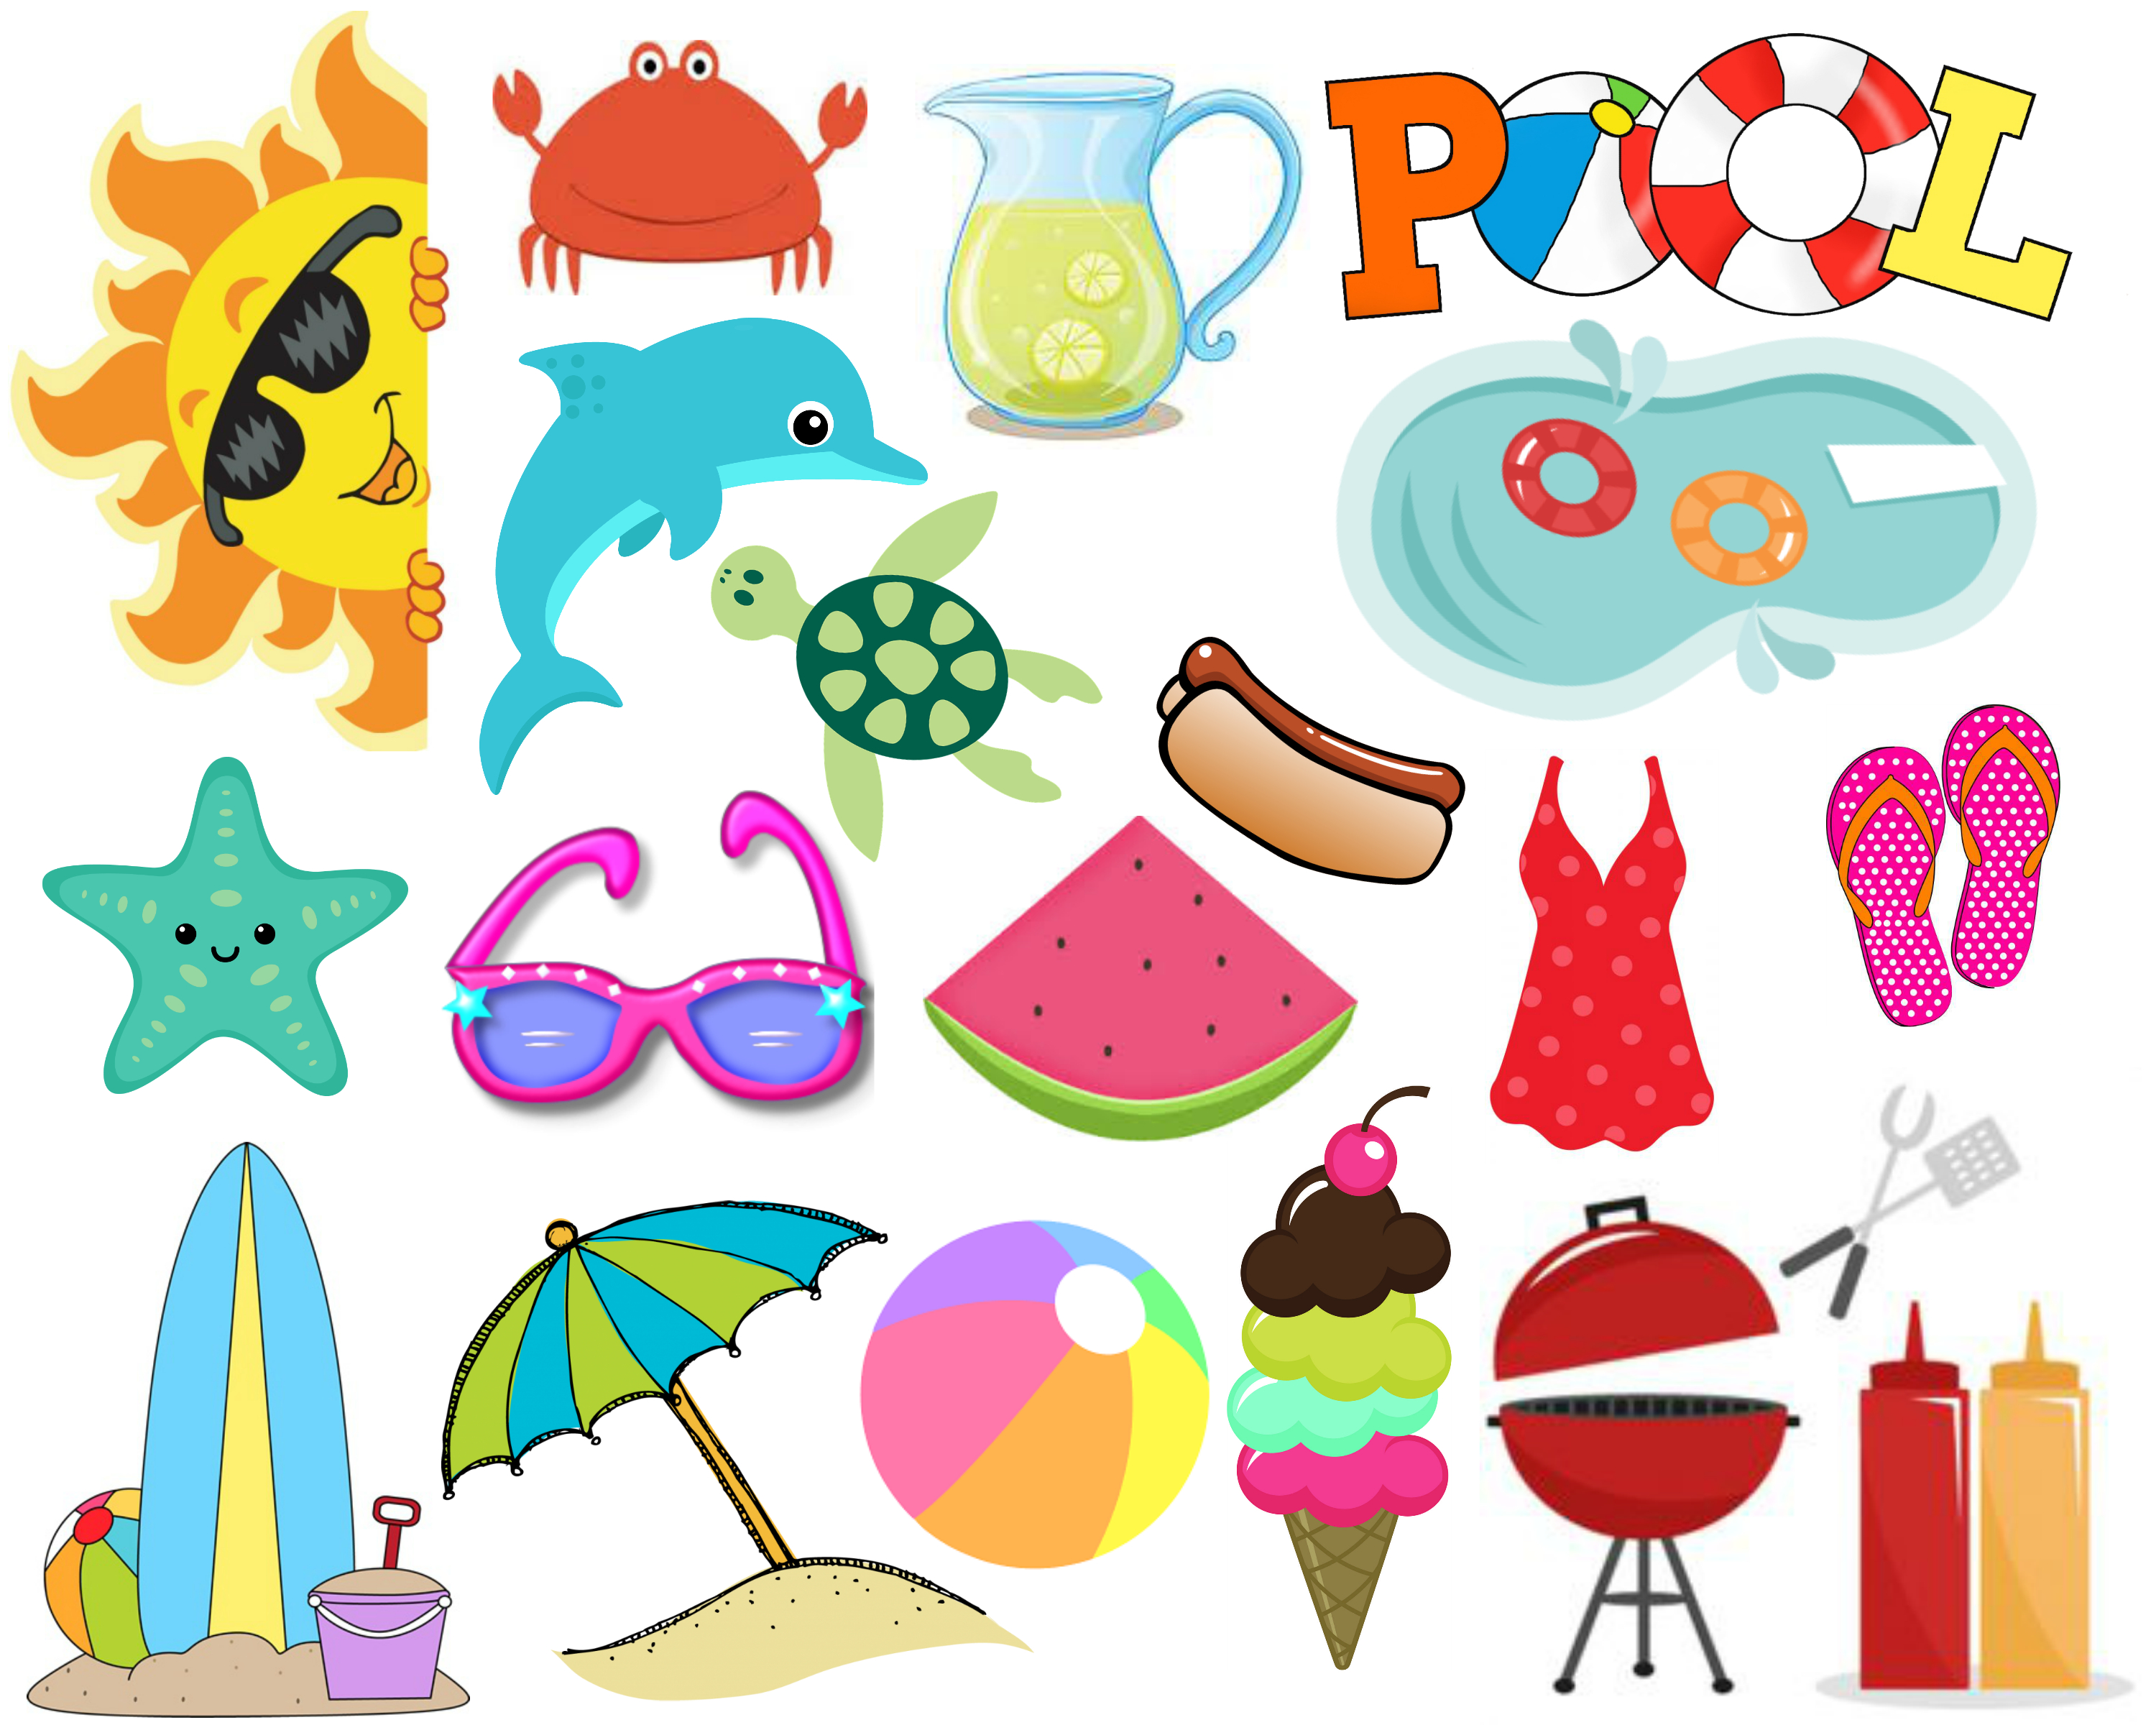 Summer Fun Clipart For Free – 101 Clip Art - Free Printable Summer Clip Art